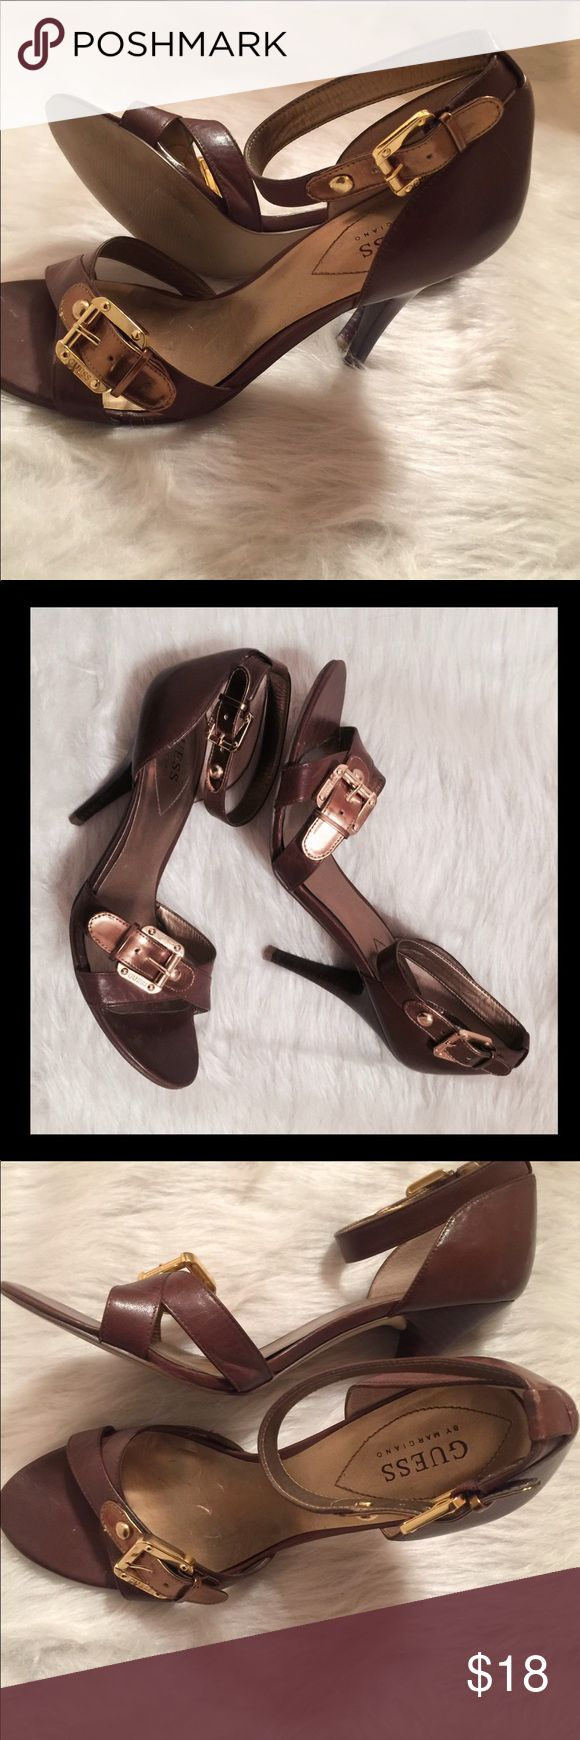 """✔️Guess Marciano Rosella Open-Toe High Brown Heels ✔️Only worn Once to a few hours wedding✔️Guess Rosella ✔️Gold Tone Hardware✔️Size 9M✔️Ankle Strap✔️Brown  ✔️Heel 4.5"""" Guess By Marciano Shoes Sandals"""